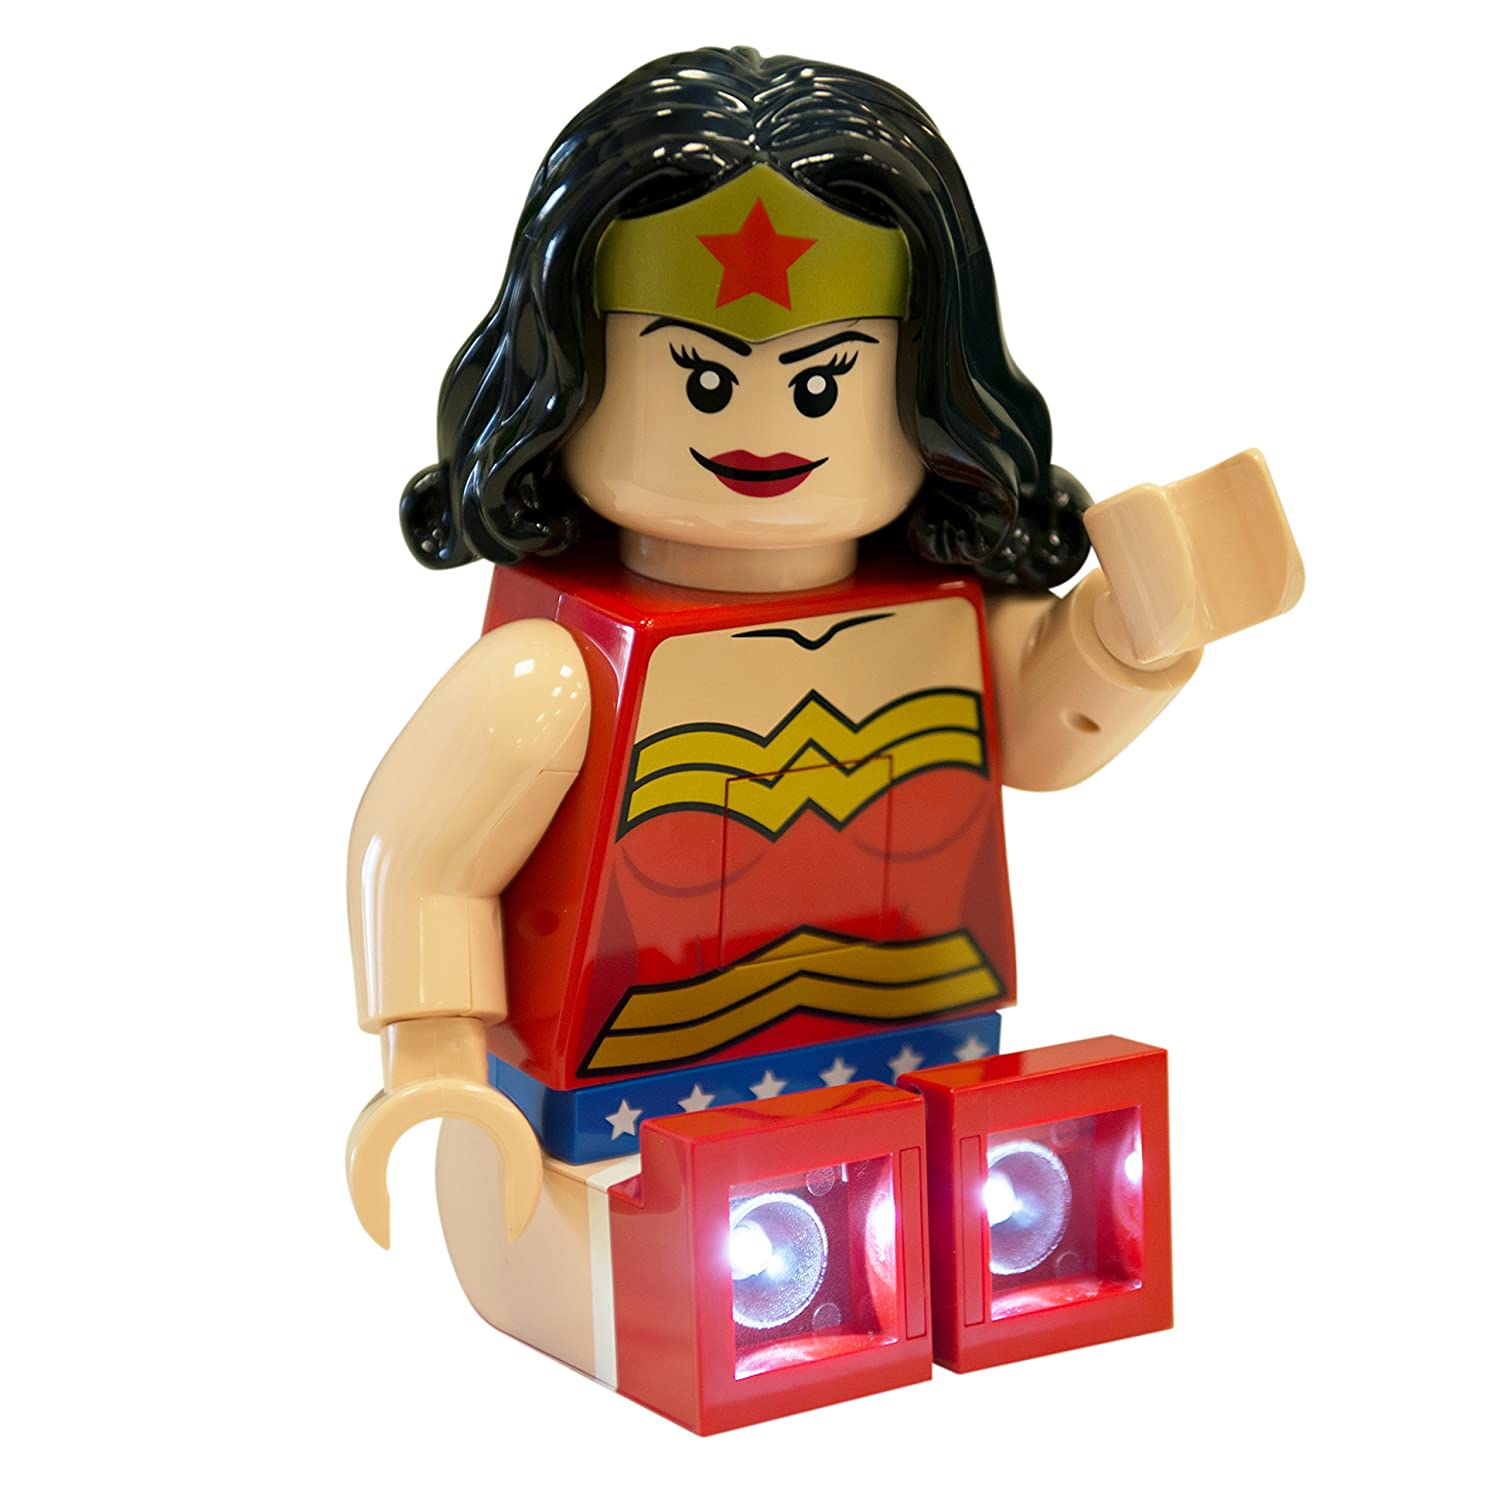 LEGO DC Super Heroes - Wonder Woman LED Torch Night Light/Reading Light - 8 in